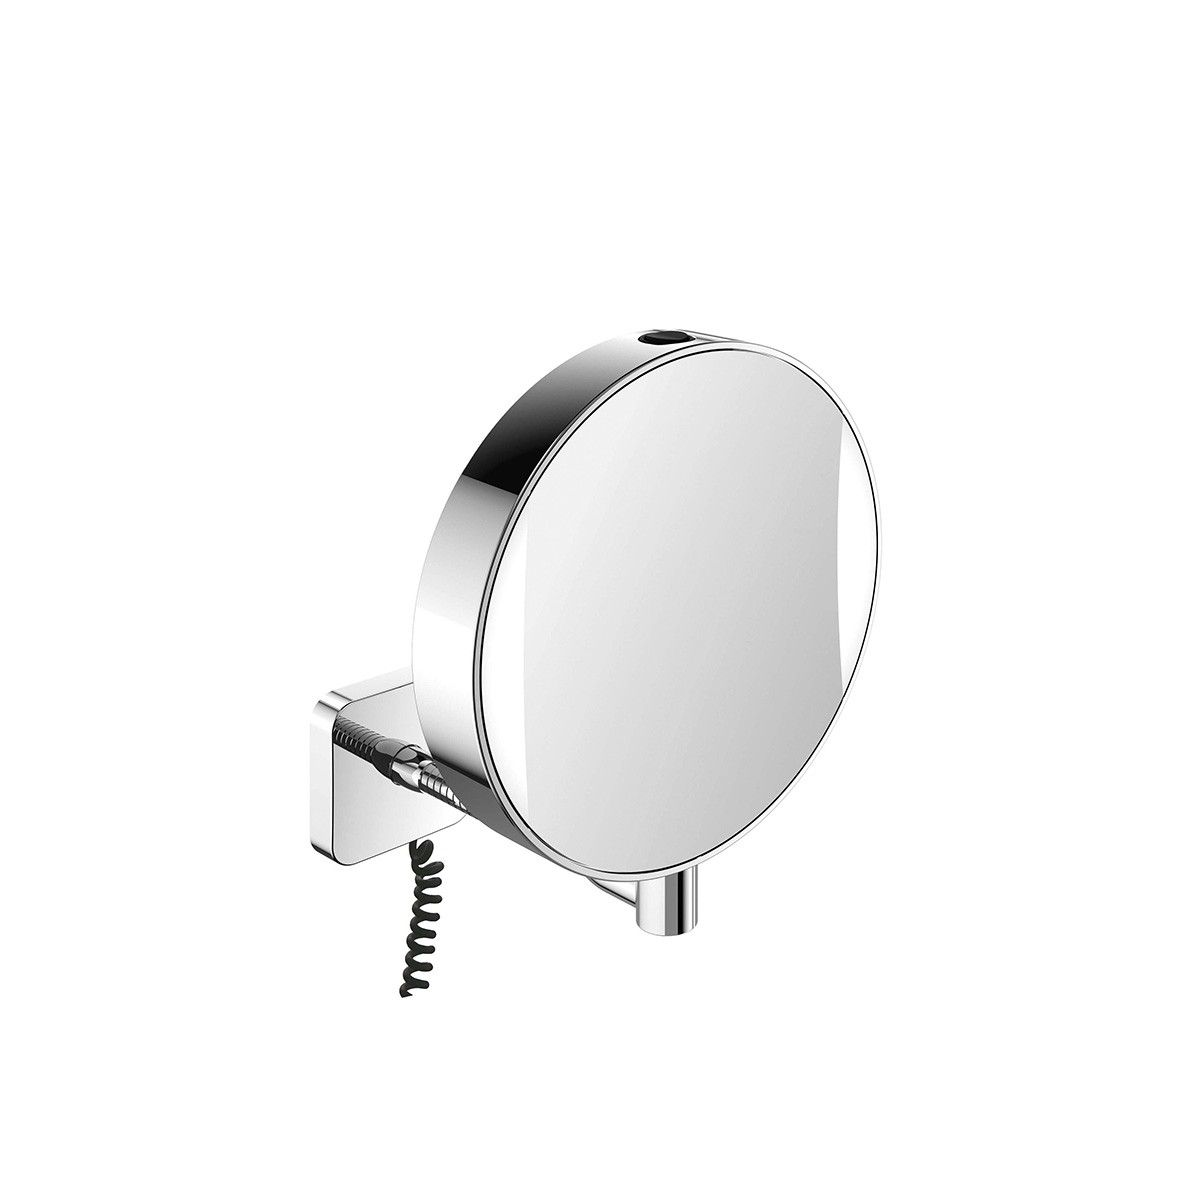 Spiegel 1095 001 10 Two Sided Flexible Arm Led Lighted Magnifying Mirror 7x 3x Magnifying Mirror Wall Mounted Magnifying Mirror Mirror